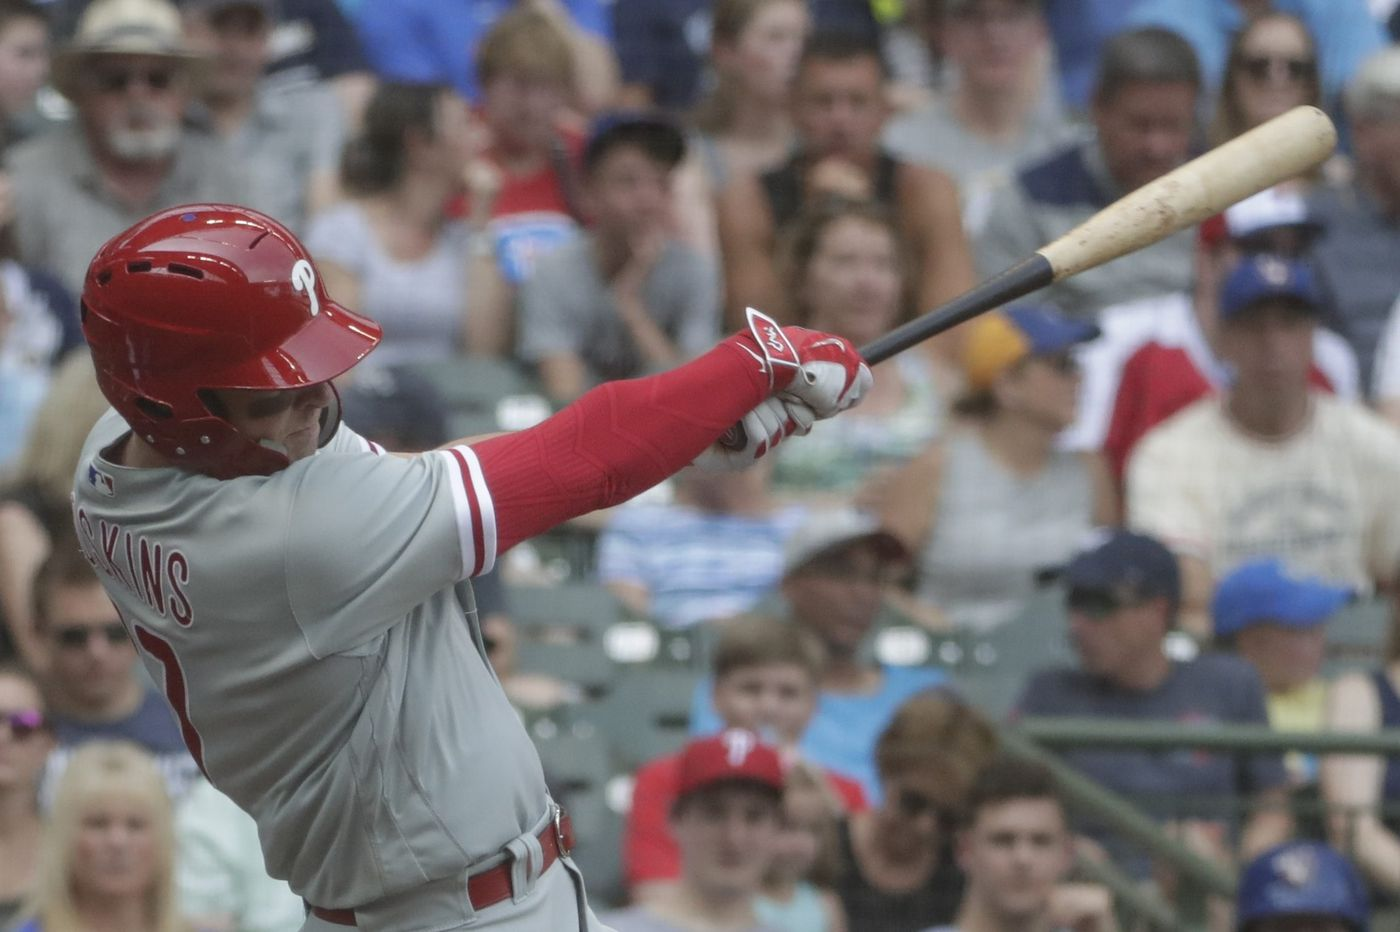 A refreshed Rhys Hoskins is finding success again after returning to Phillies lineup